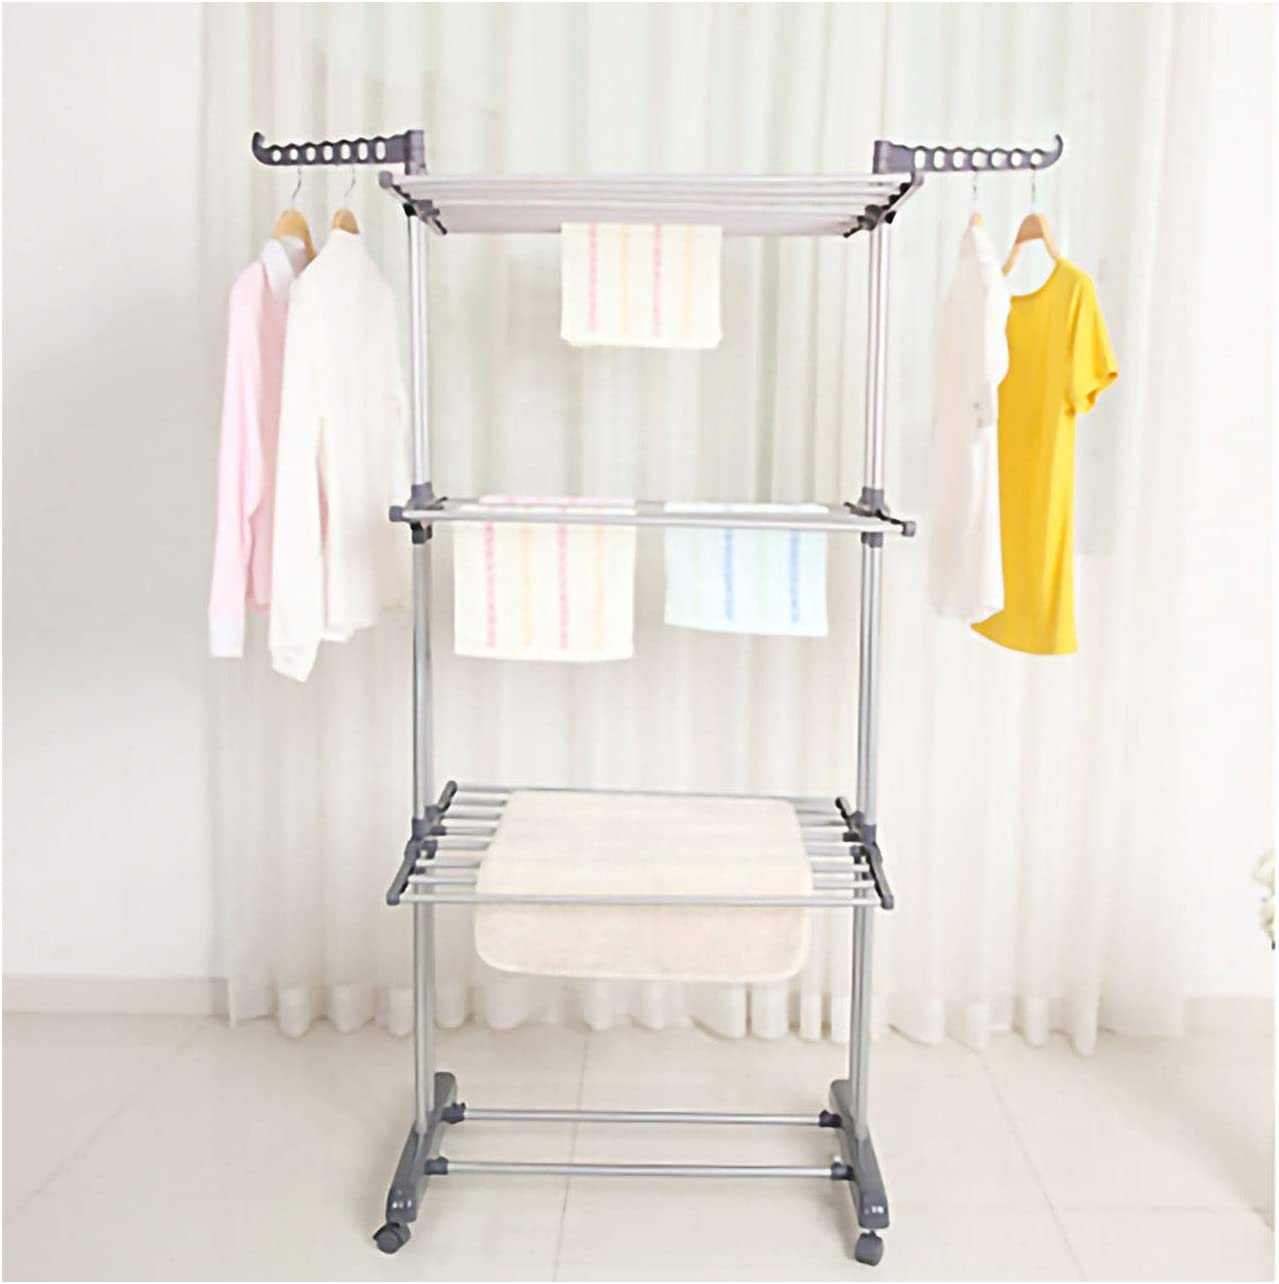 Kentaly Clothes Drying Rack, 3-Tier Collapsible Rolling Dryer Clothes Hanger Adjustable Large Stainless Steel Garment Laundry Racks with Foldable Wings Indoor Outdoor